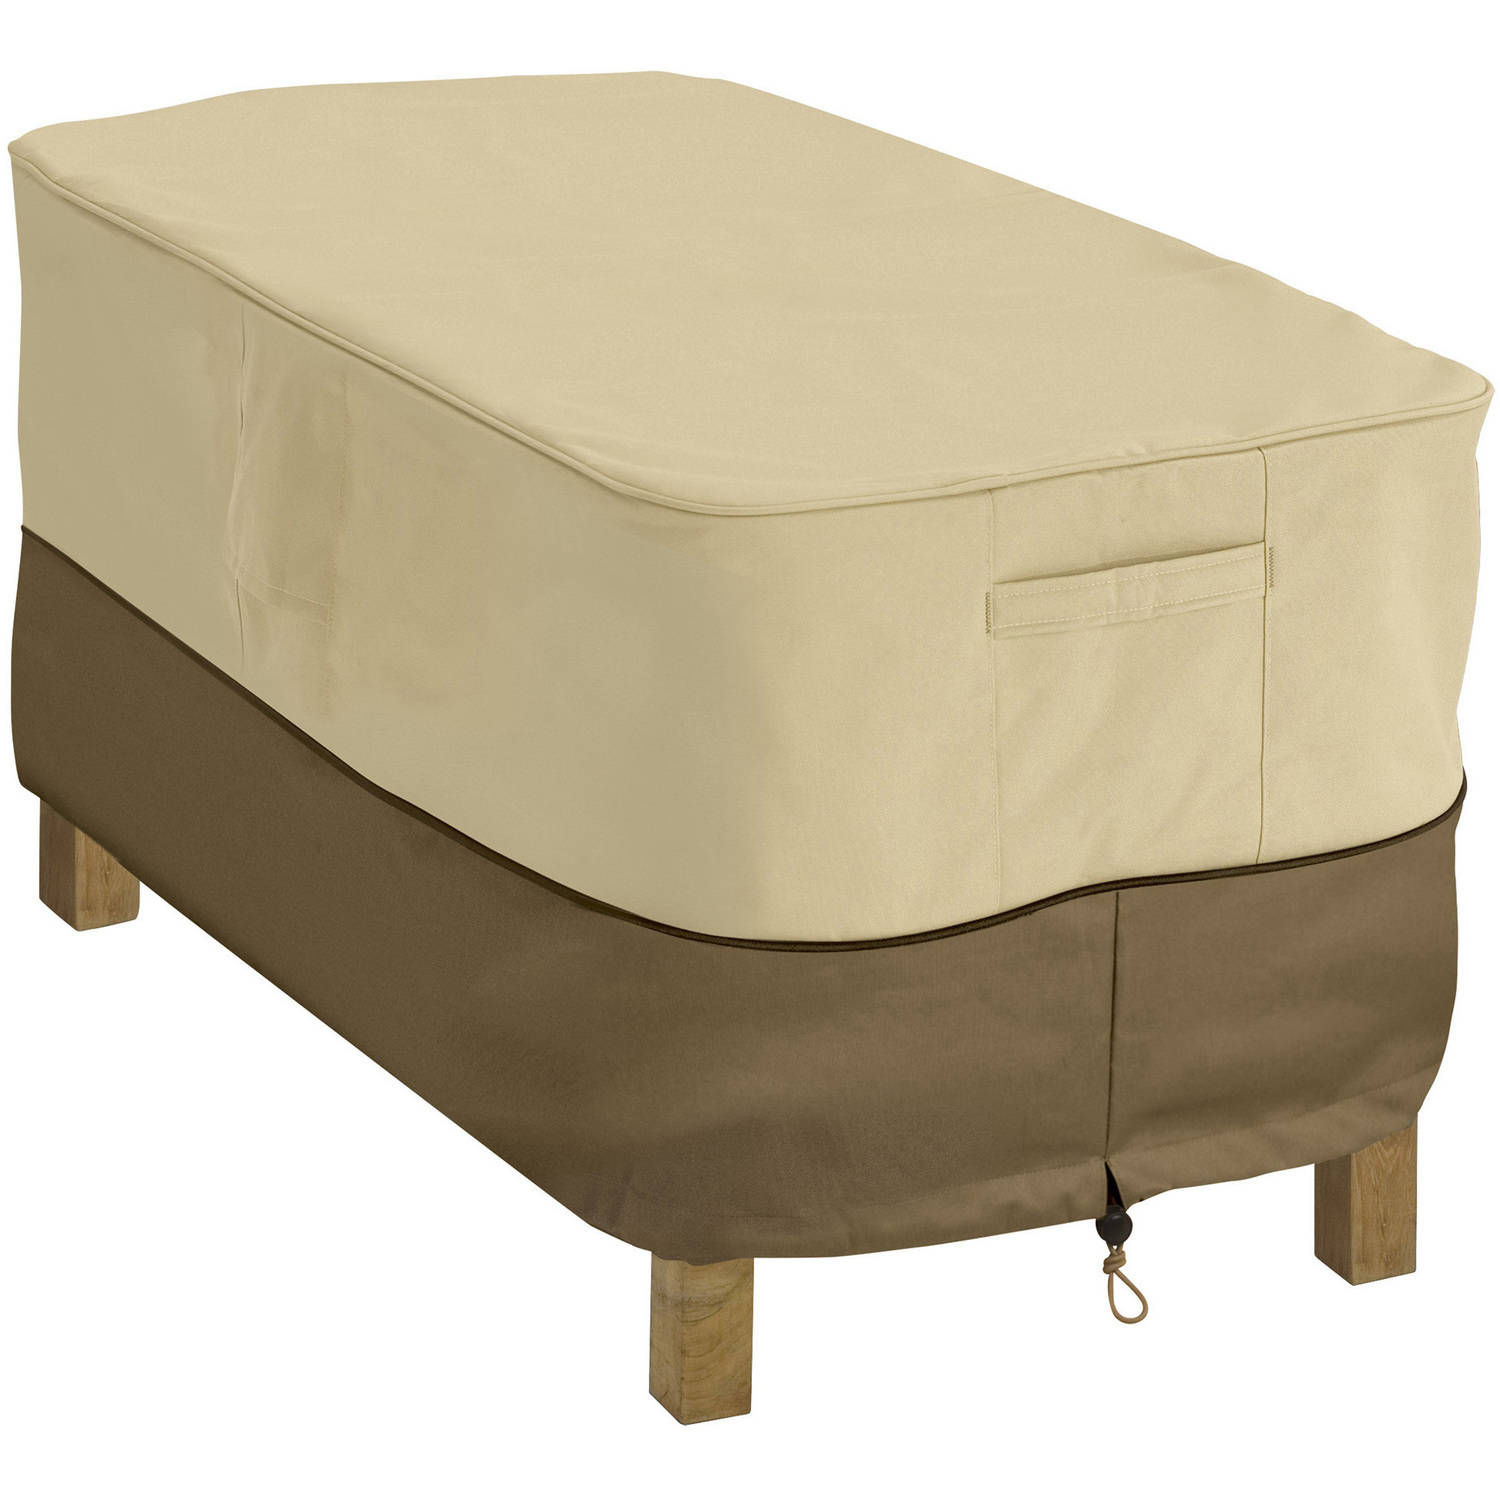 Classic Accessories Veranda Patio Coffee Table Cover   Durable And Water  Resistant Outdoor Furniture Cover,